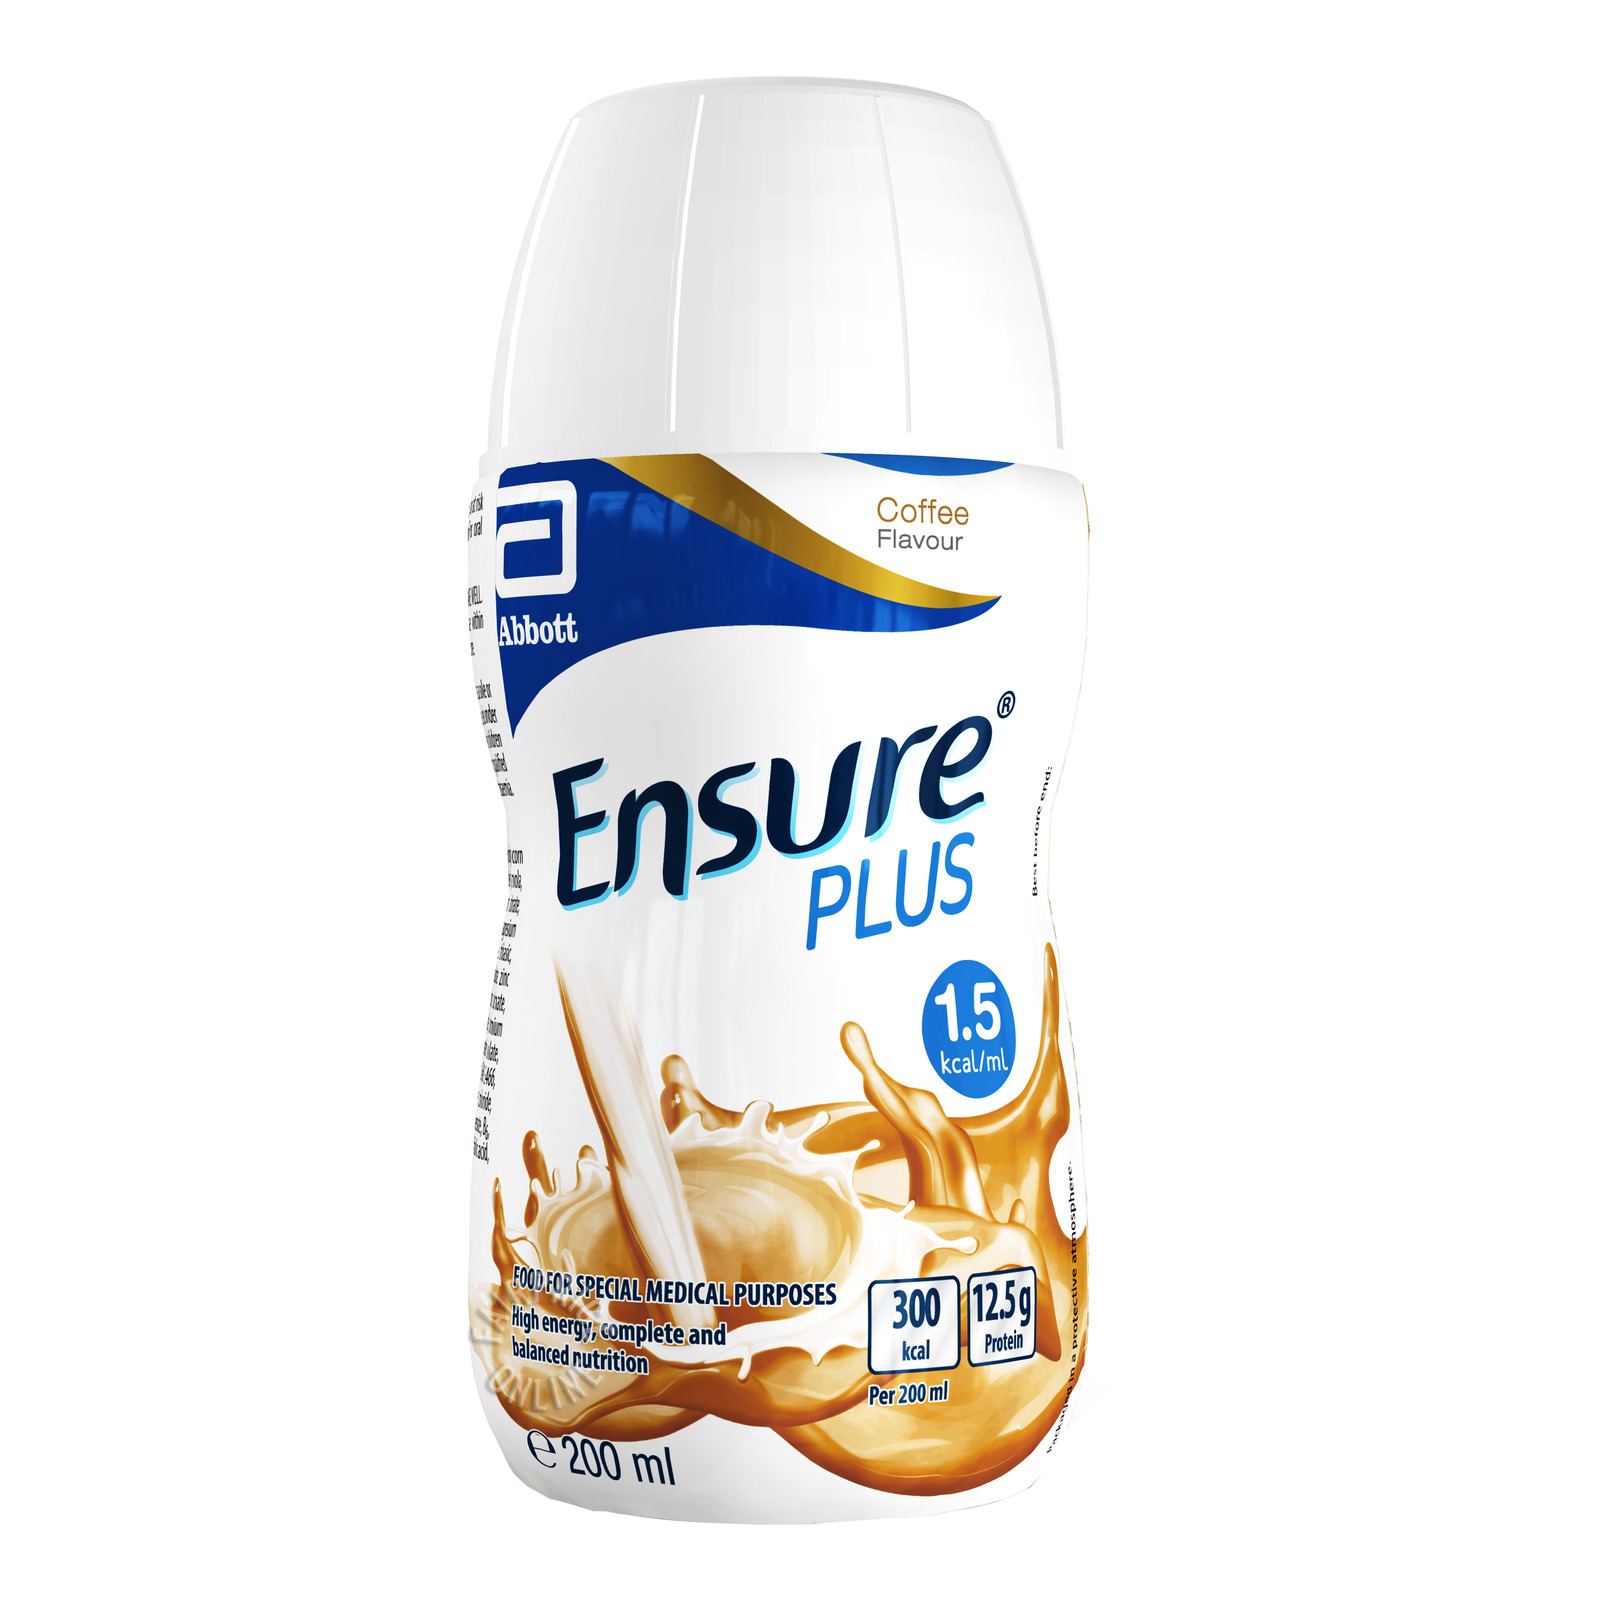 Abbott Ensure Plus Bottle Milk - Coffee